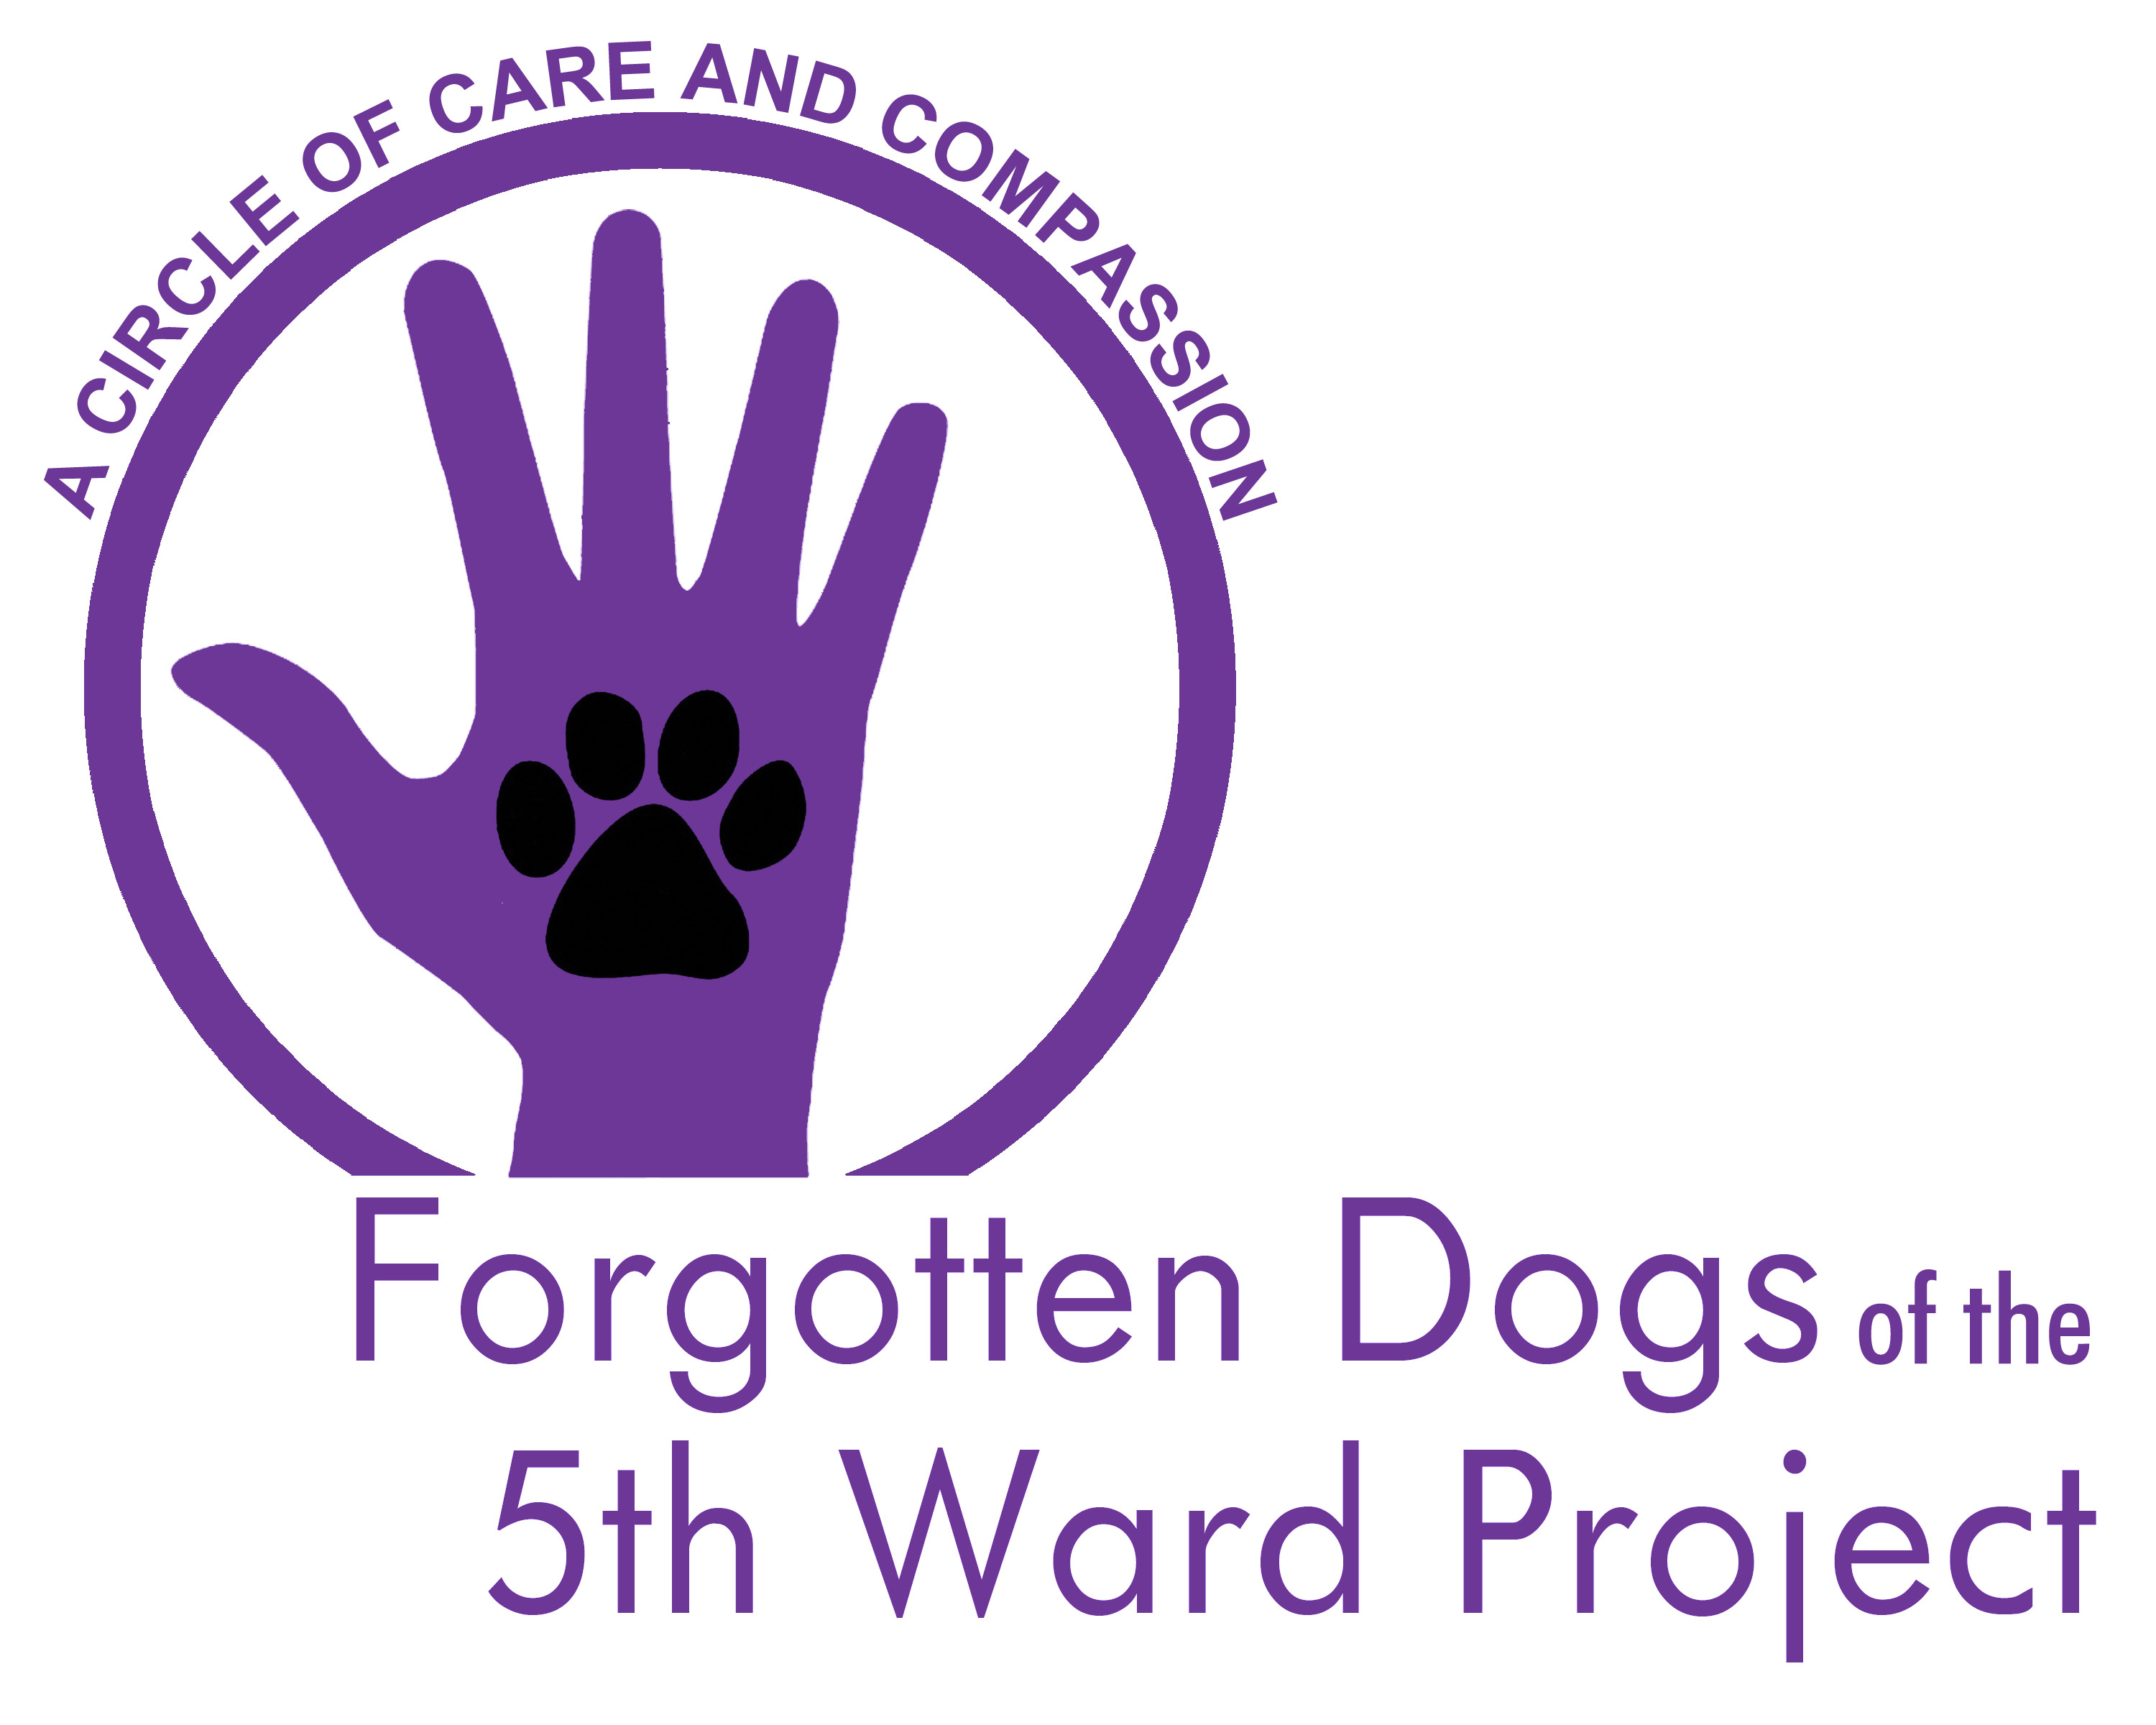 Forgotten Dogs of the 5th Ward Project